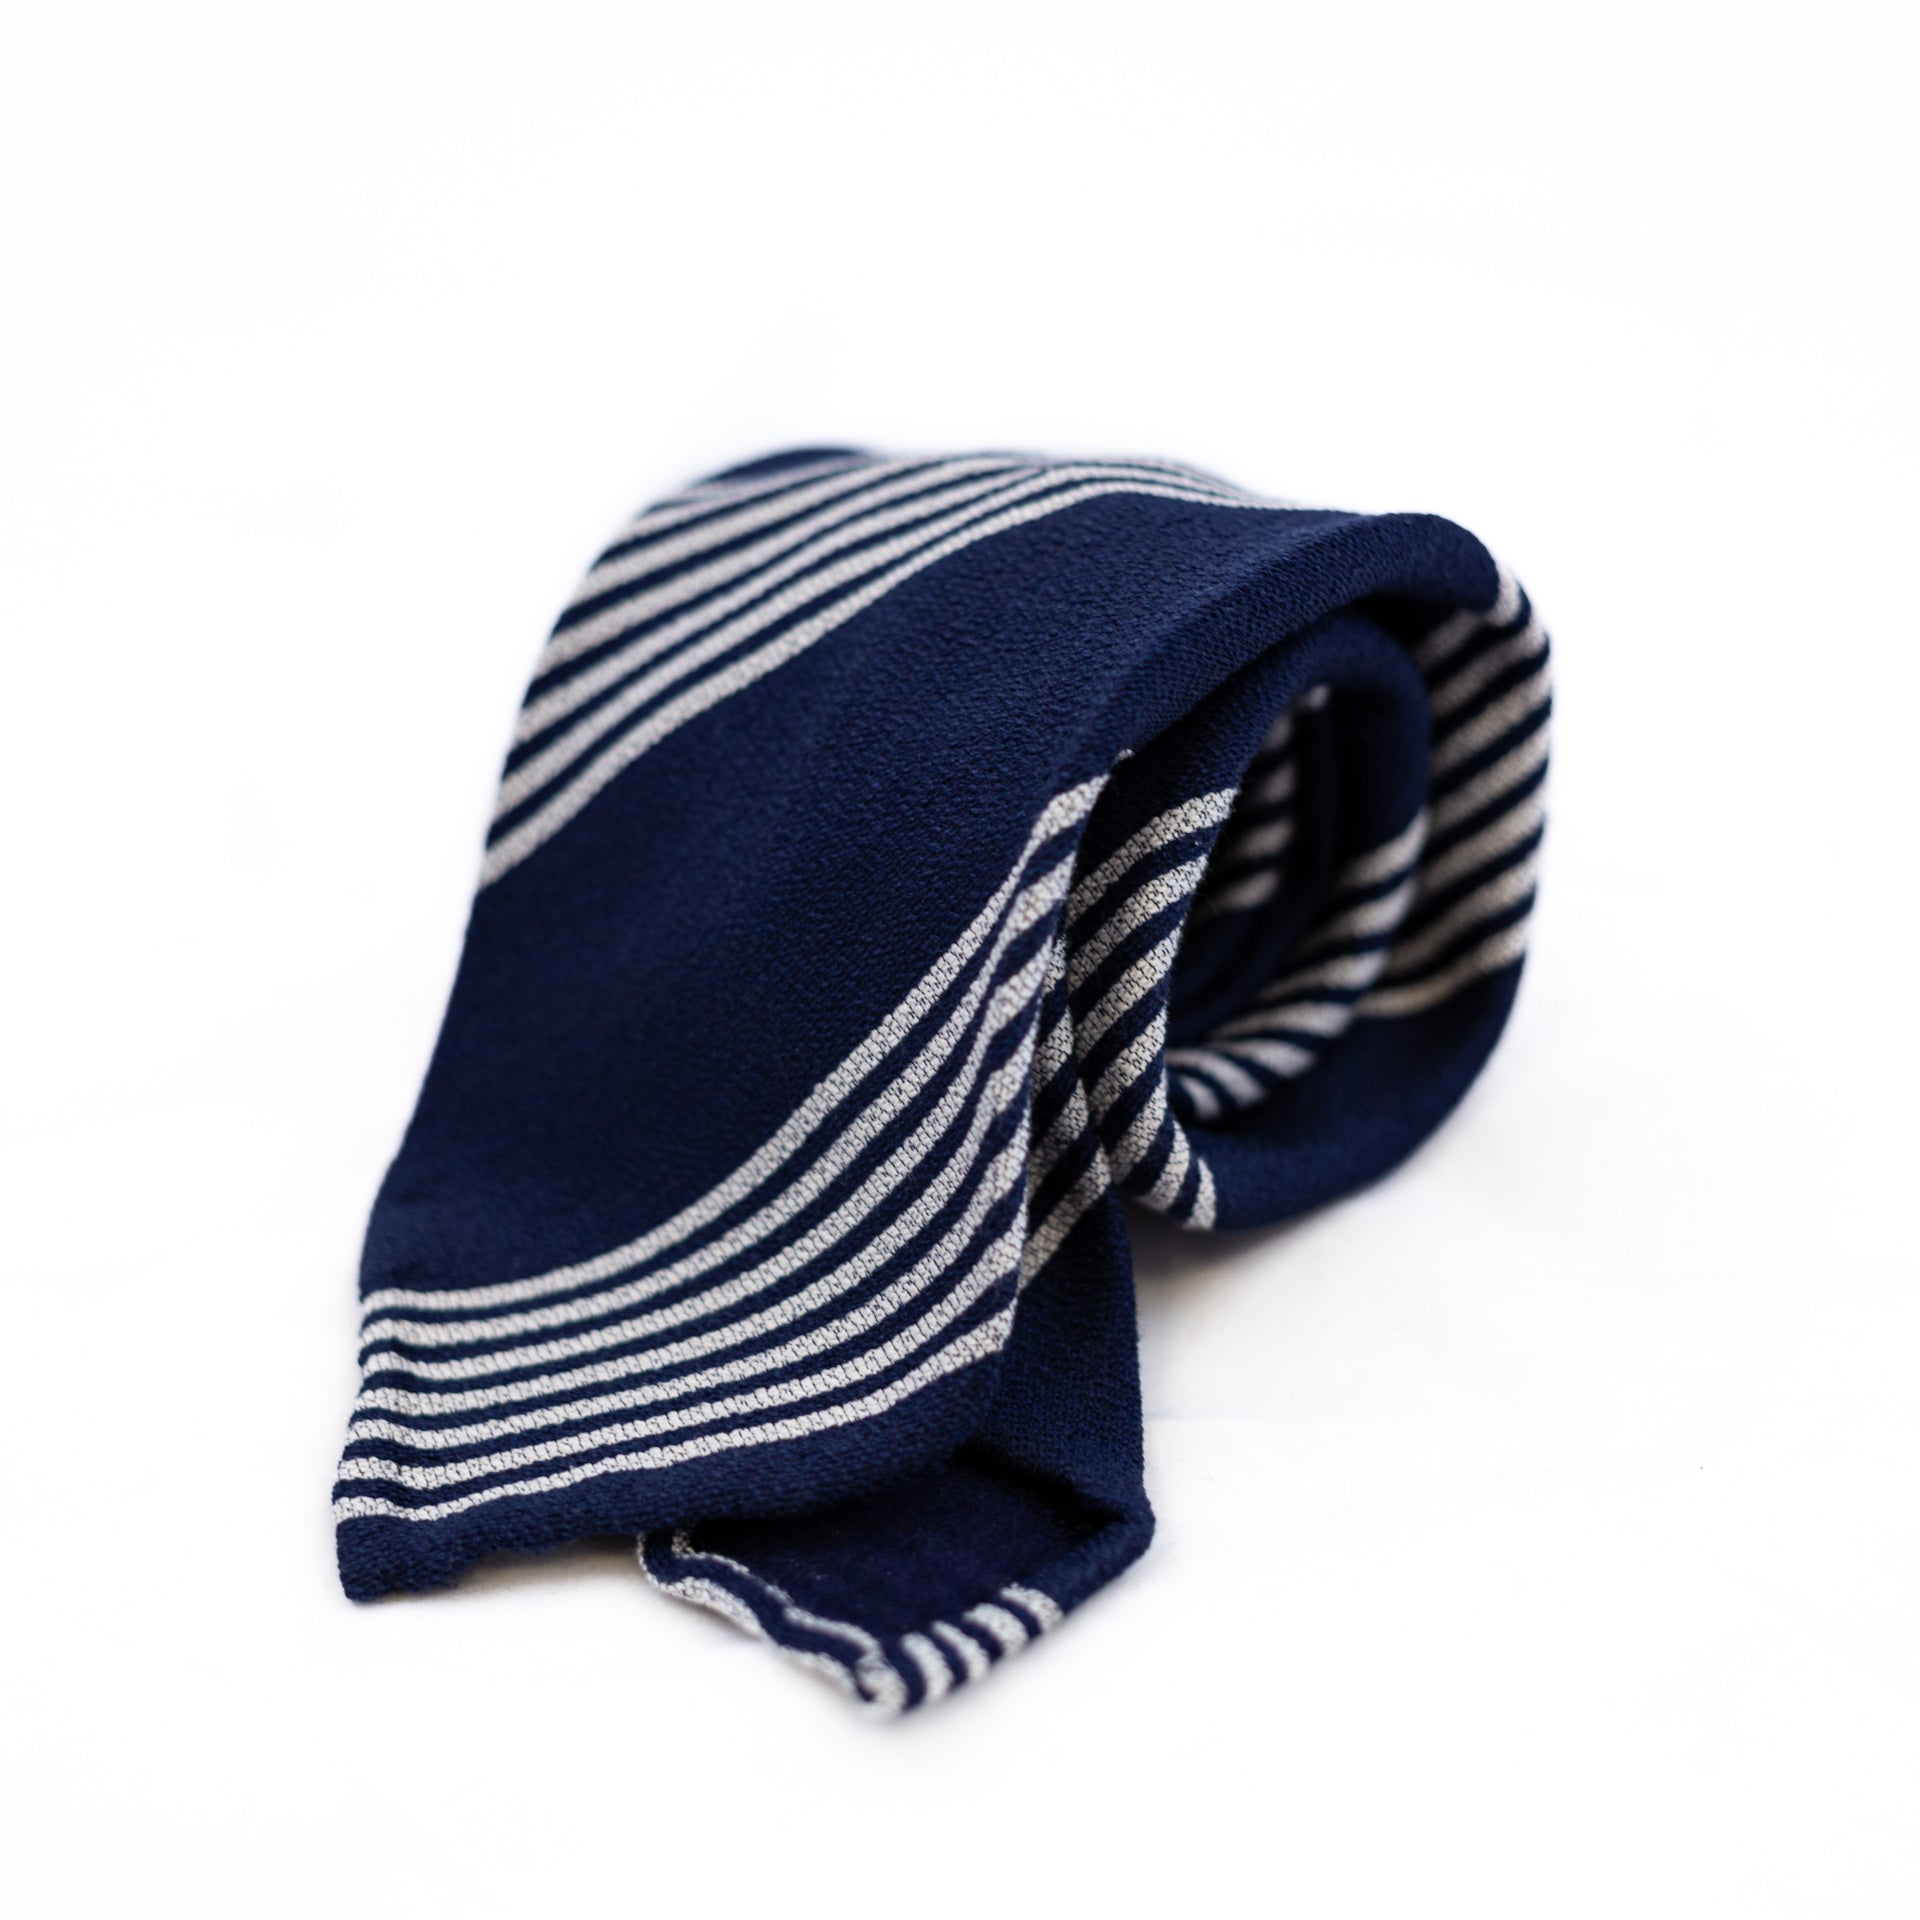 Navy and white striped 5-fold silk tie